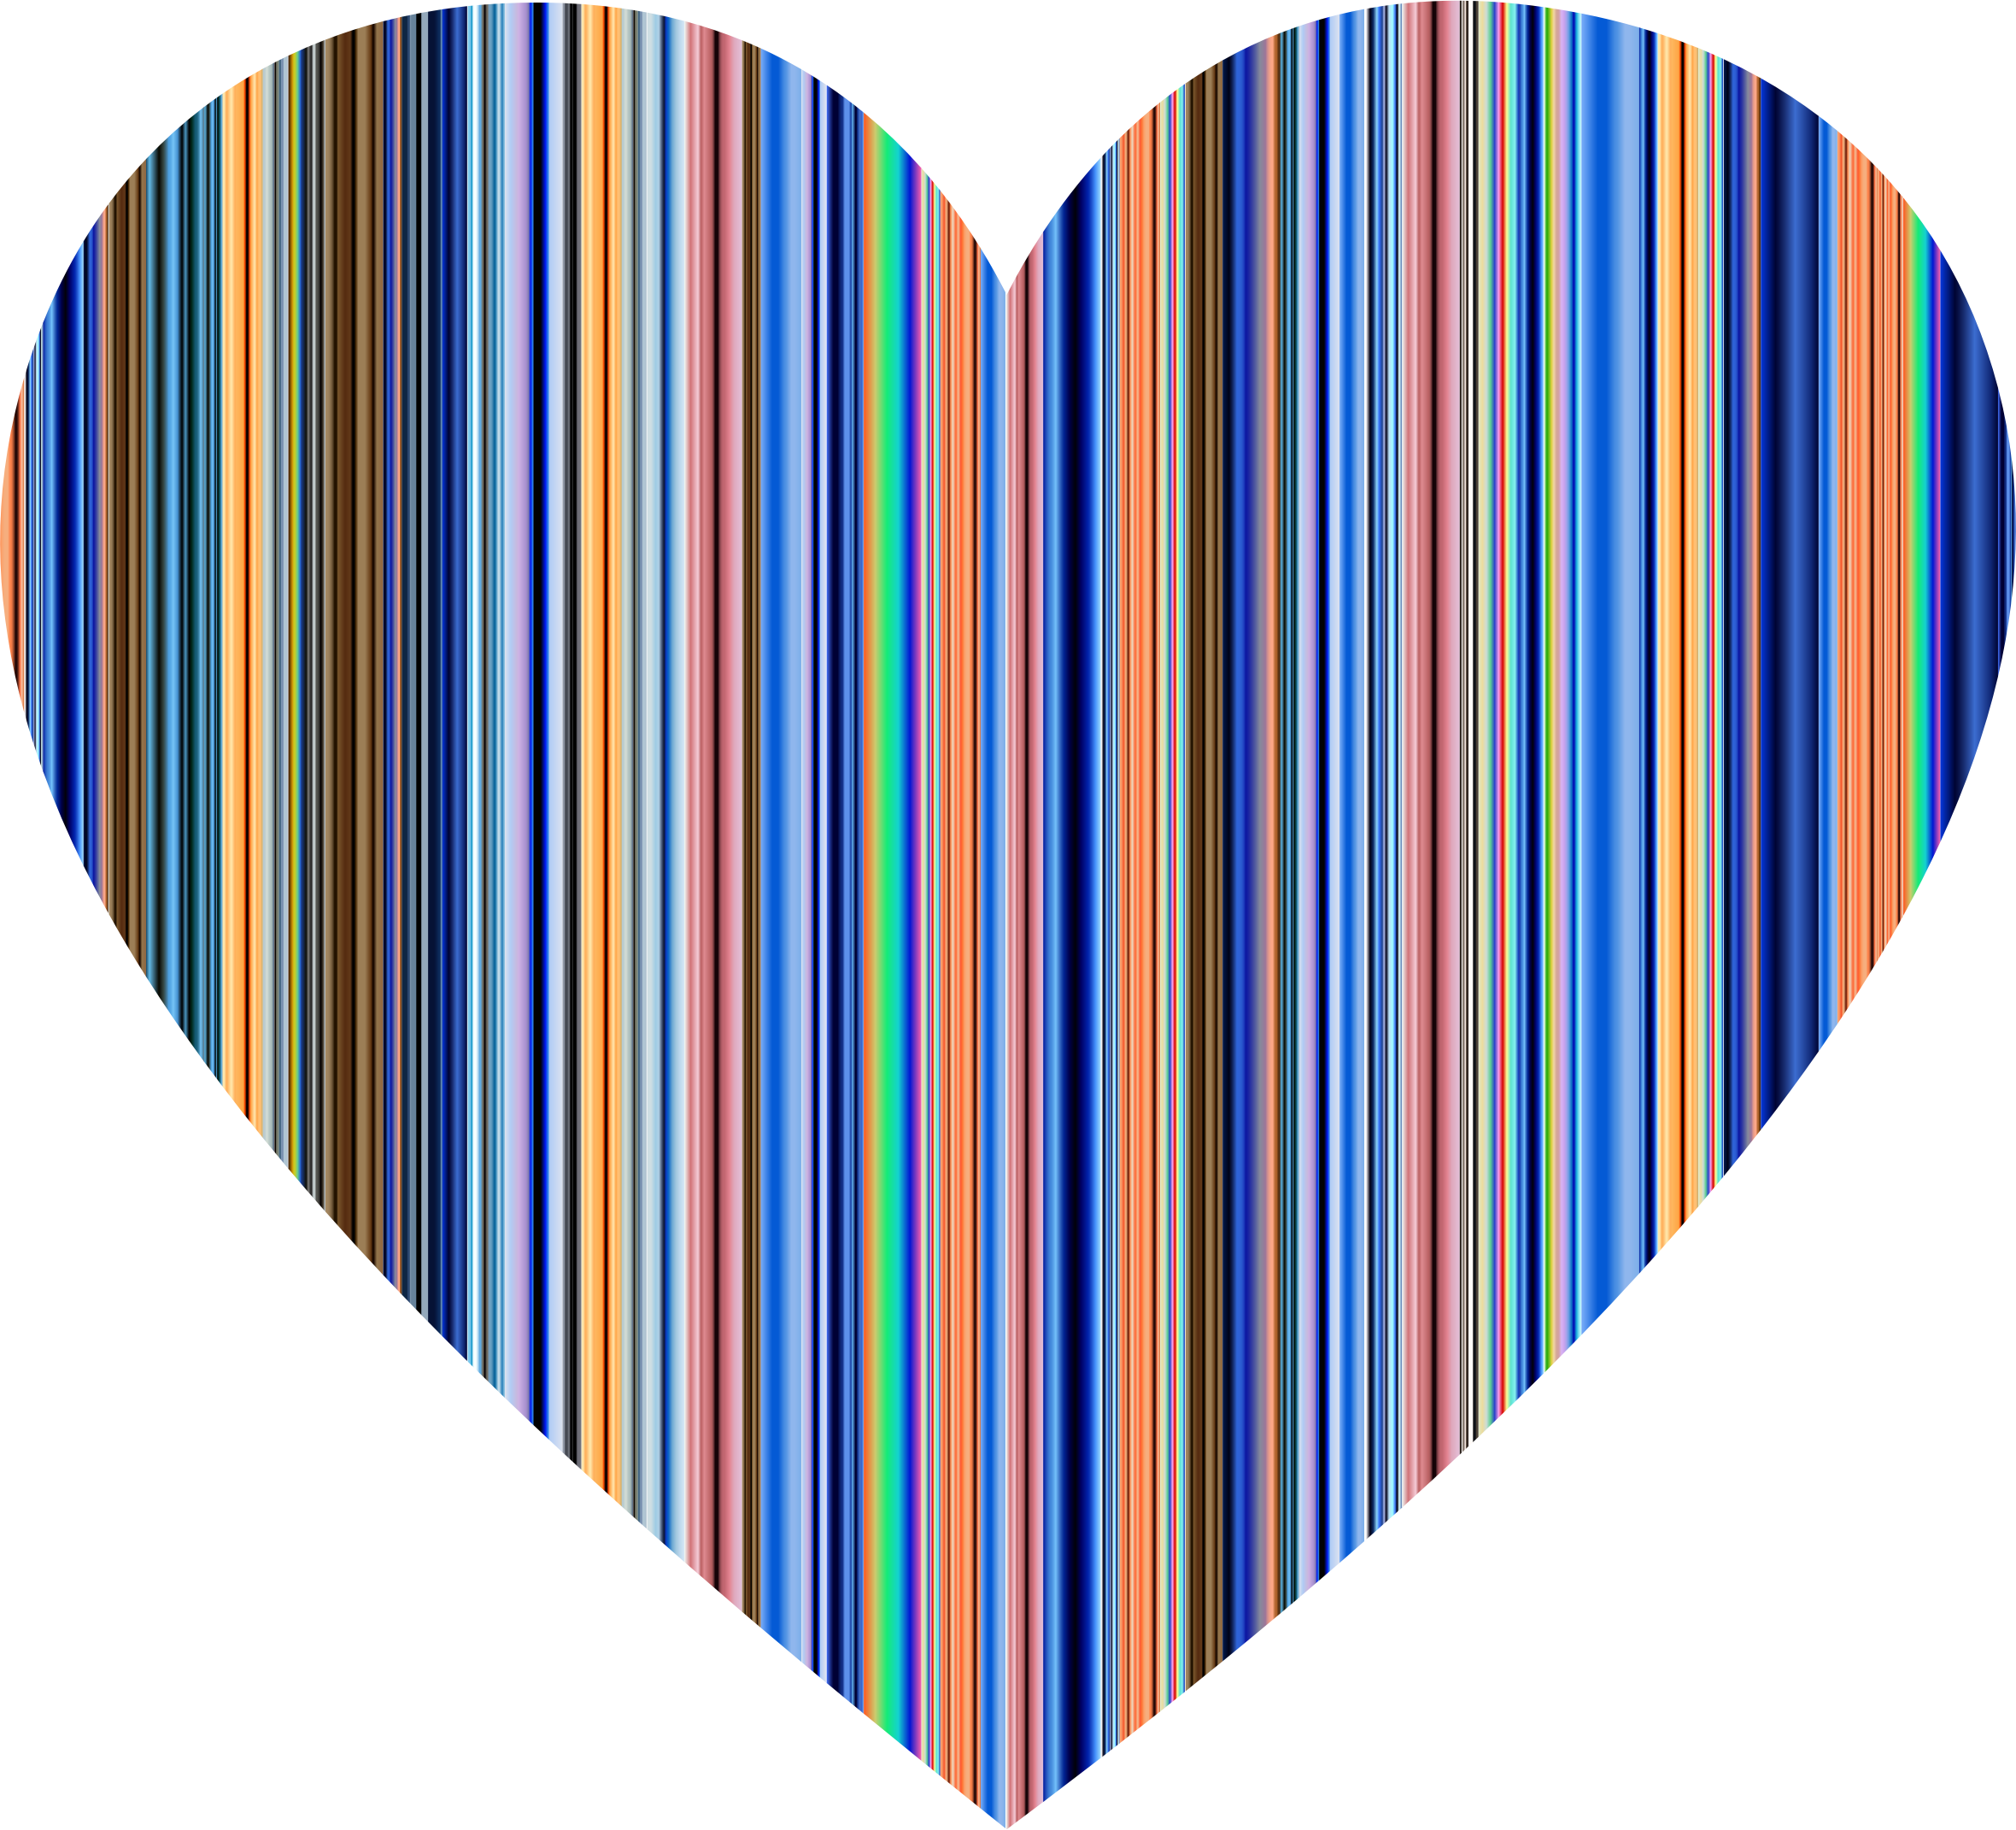 Colorful Striped Heart by GDJ